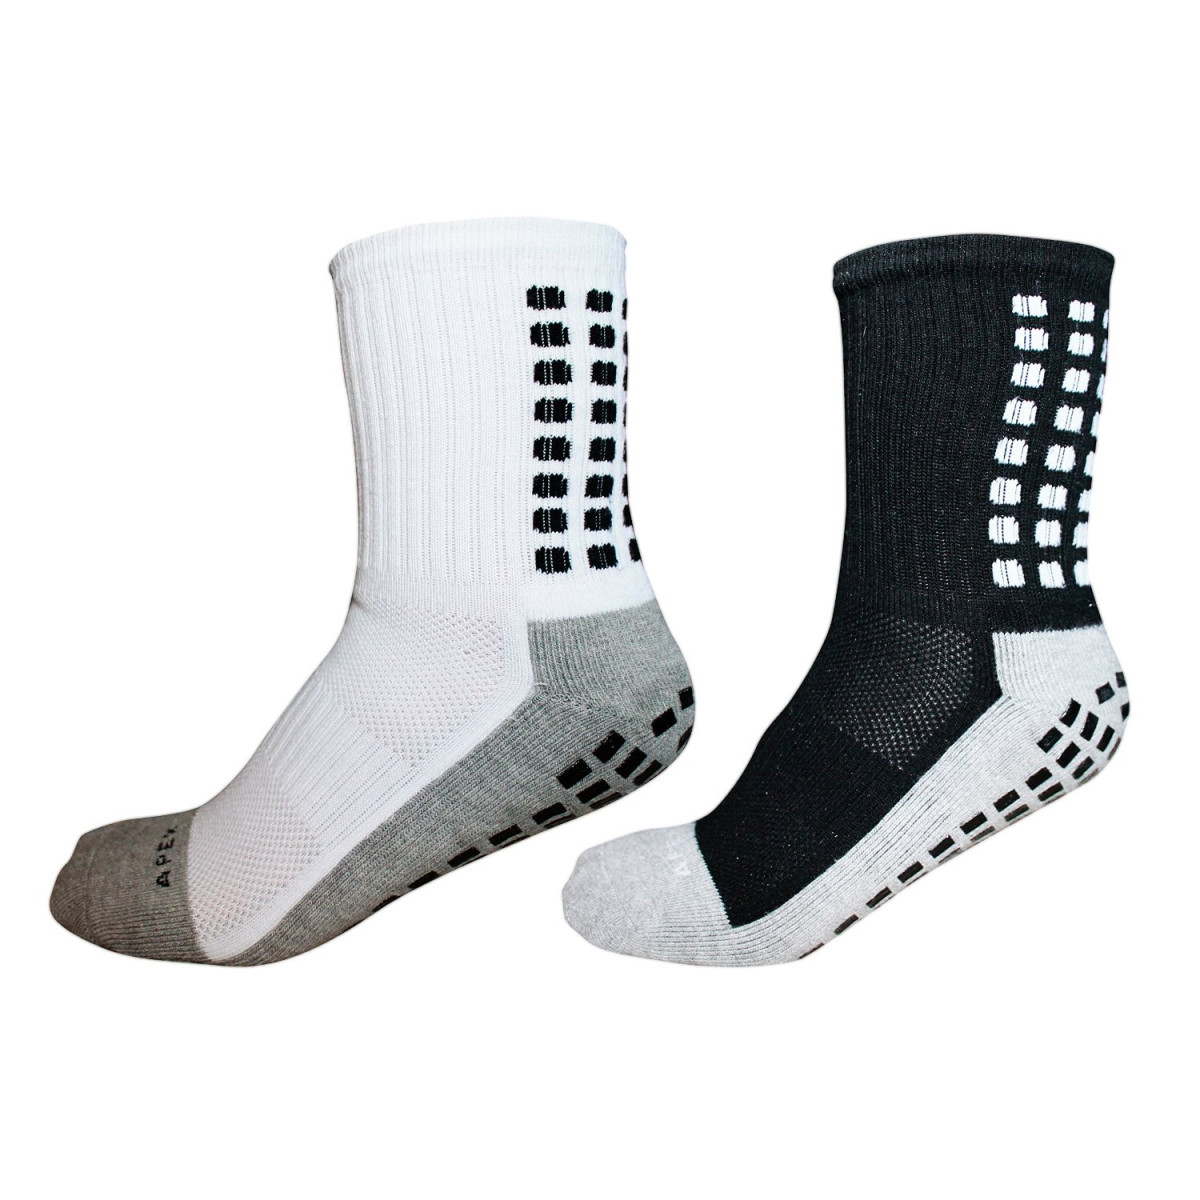 Socks Size  X Fits What Shoe Size